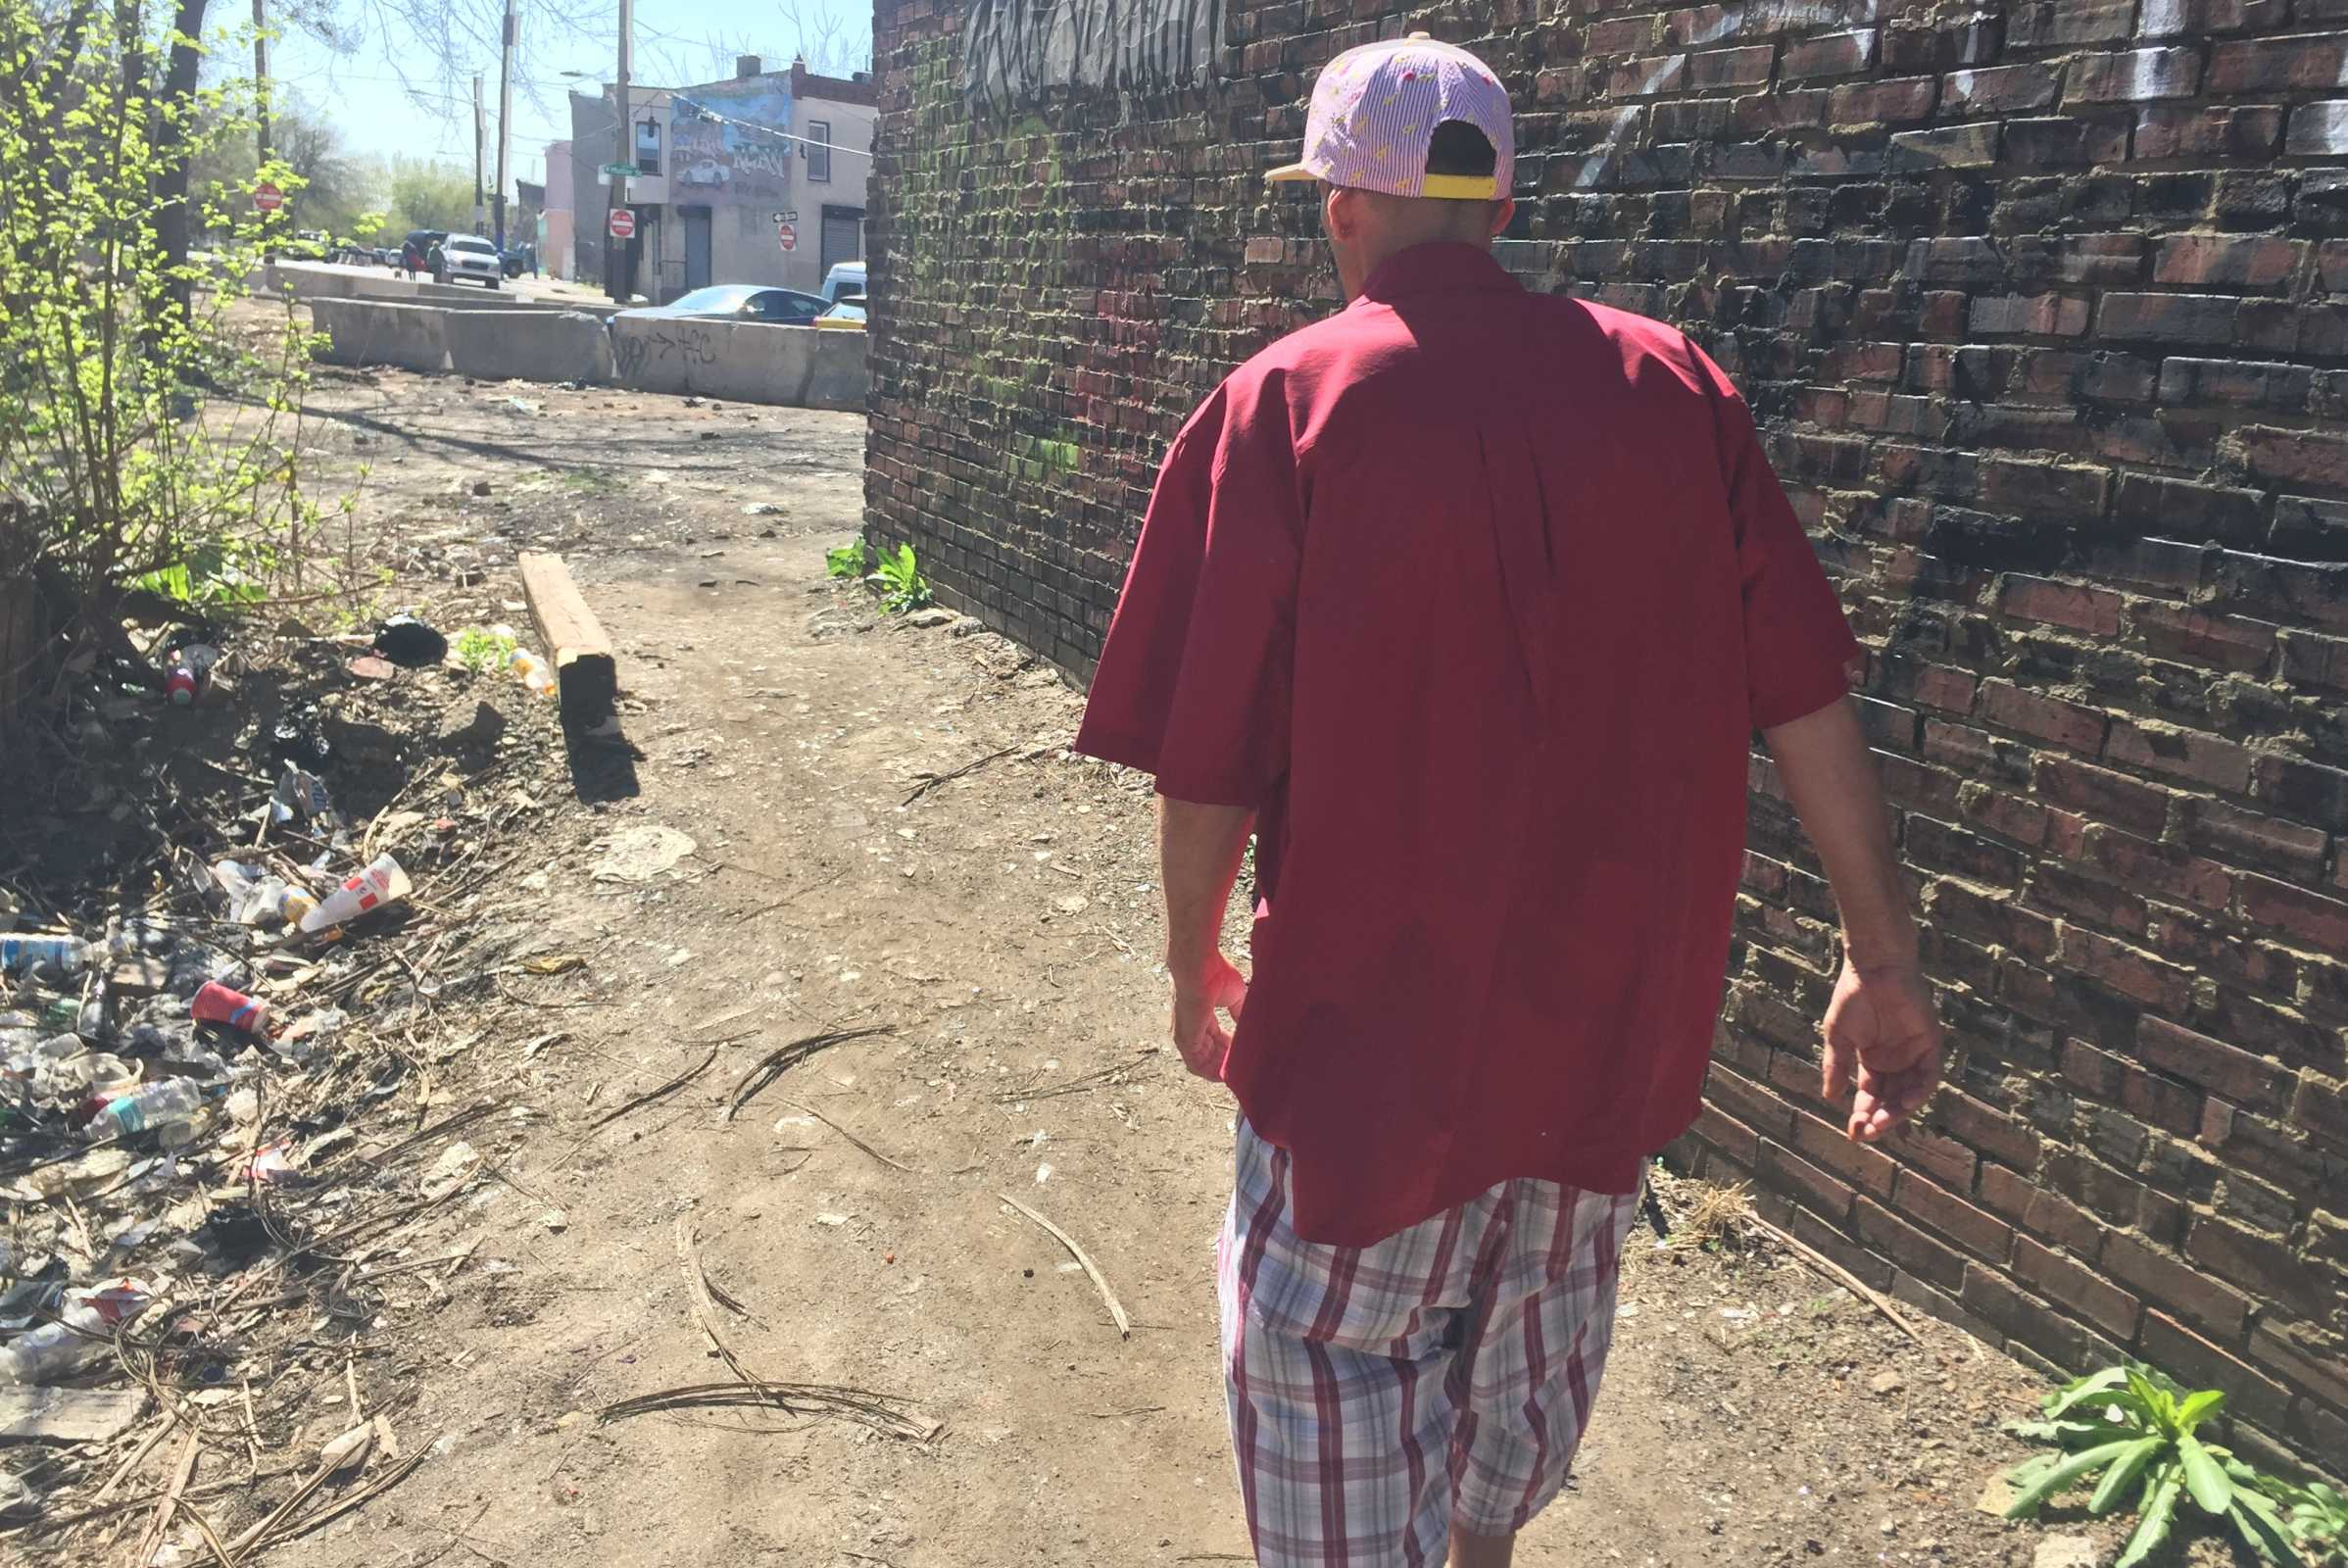 A man named Mike leaves the heroin encampment in Philly's Fairhill section on Tuesday. He comes daily, his says, to get high. He did not plan on watching the Dr. Oz show.